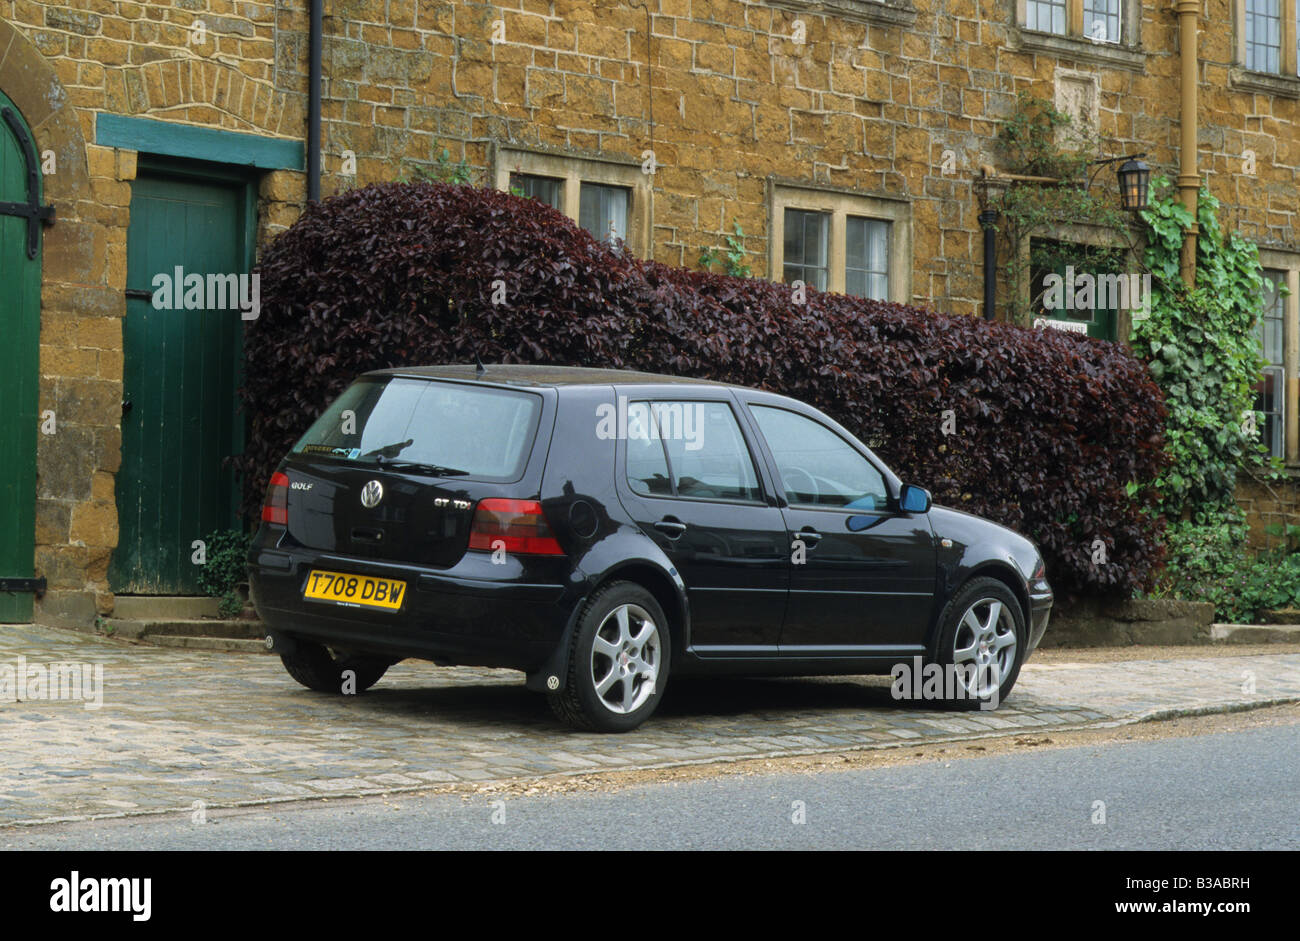 volkswagen golf gt tdi mk4 stock photo royalty free image 19283141 alamy. Black Bedroom Furniture Sets. Home Design Ideas